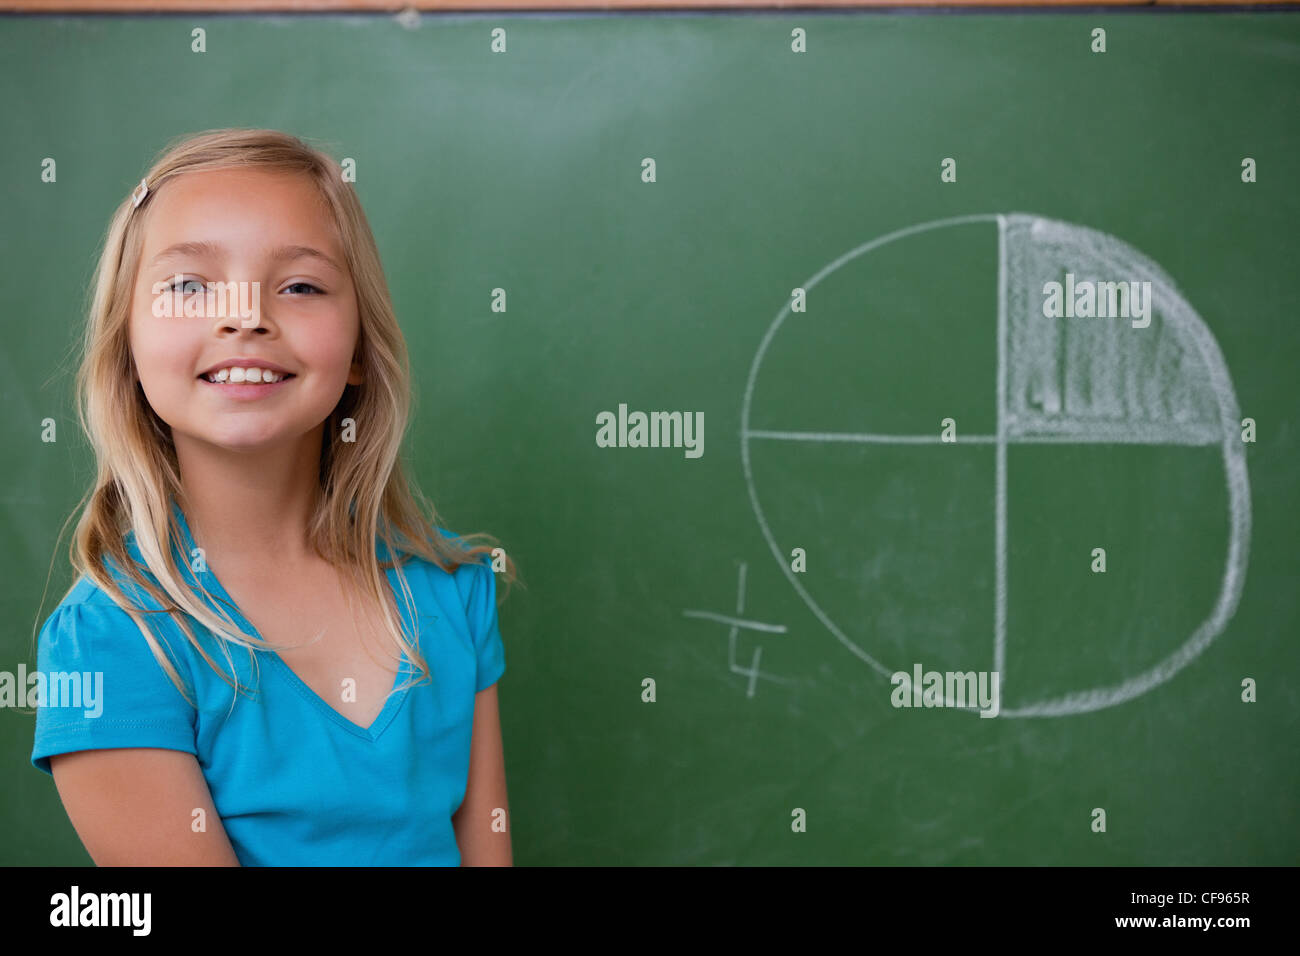 Smiling schoolgirl learning the divisions - Stock Image